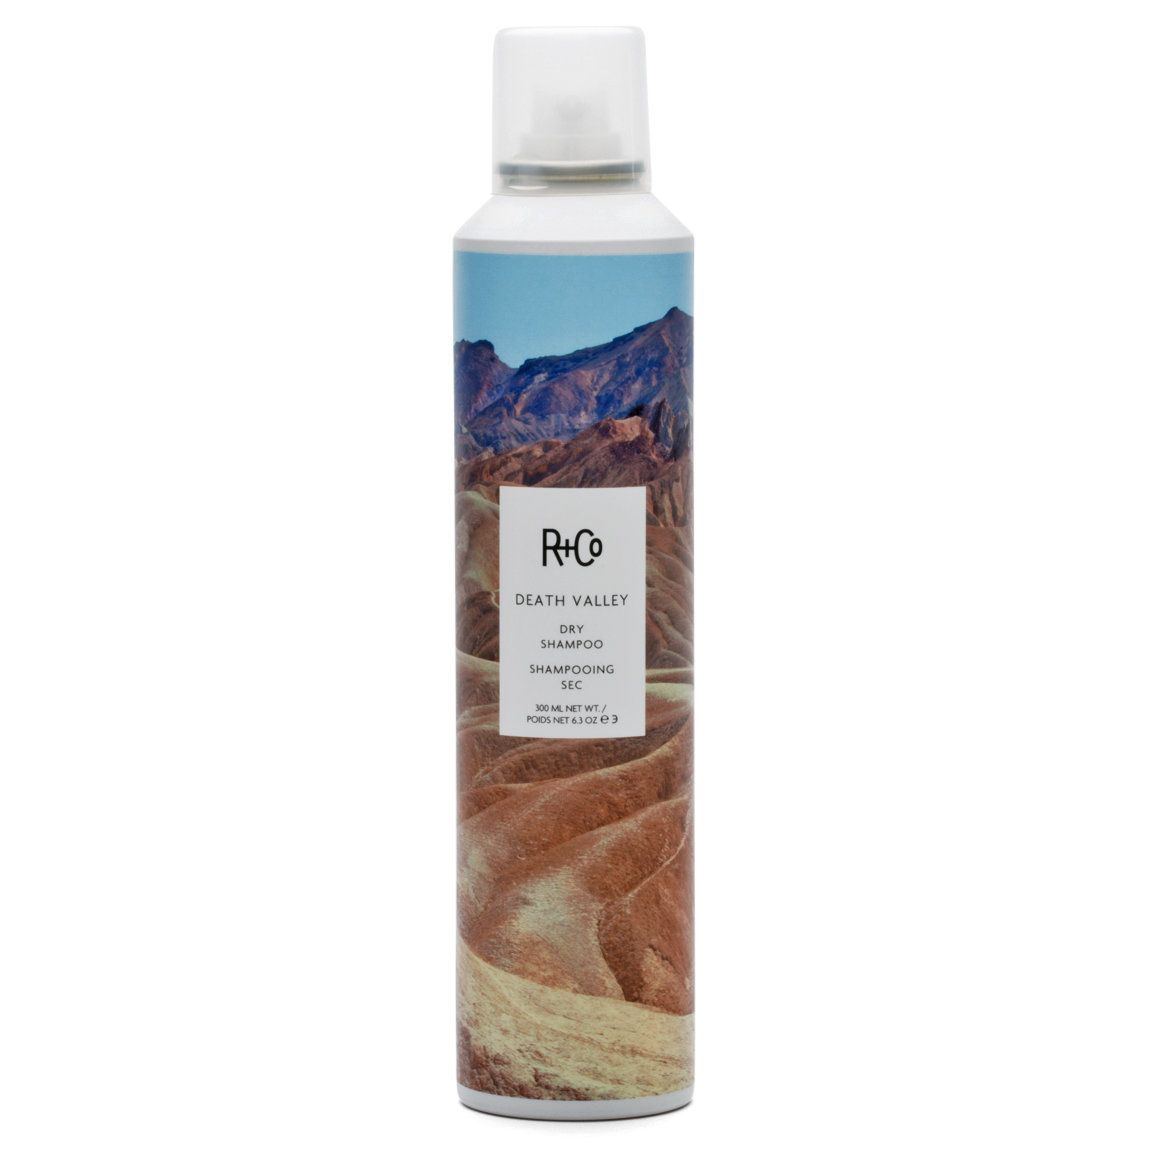 R+Co Death Valley Dry Shampoo 6.3 oz alternative view 1 - product swatch.